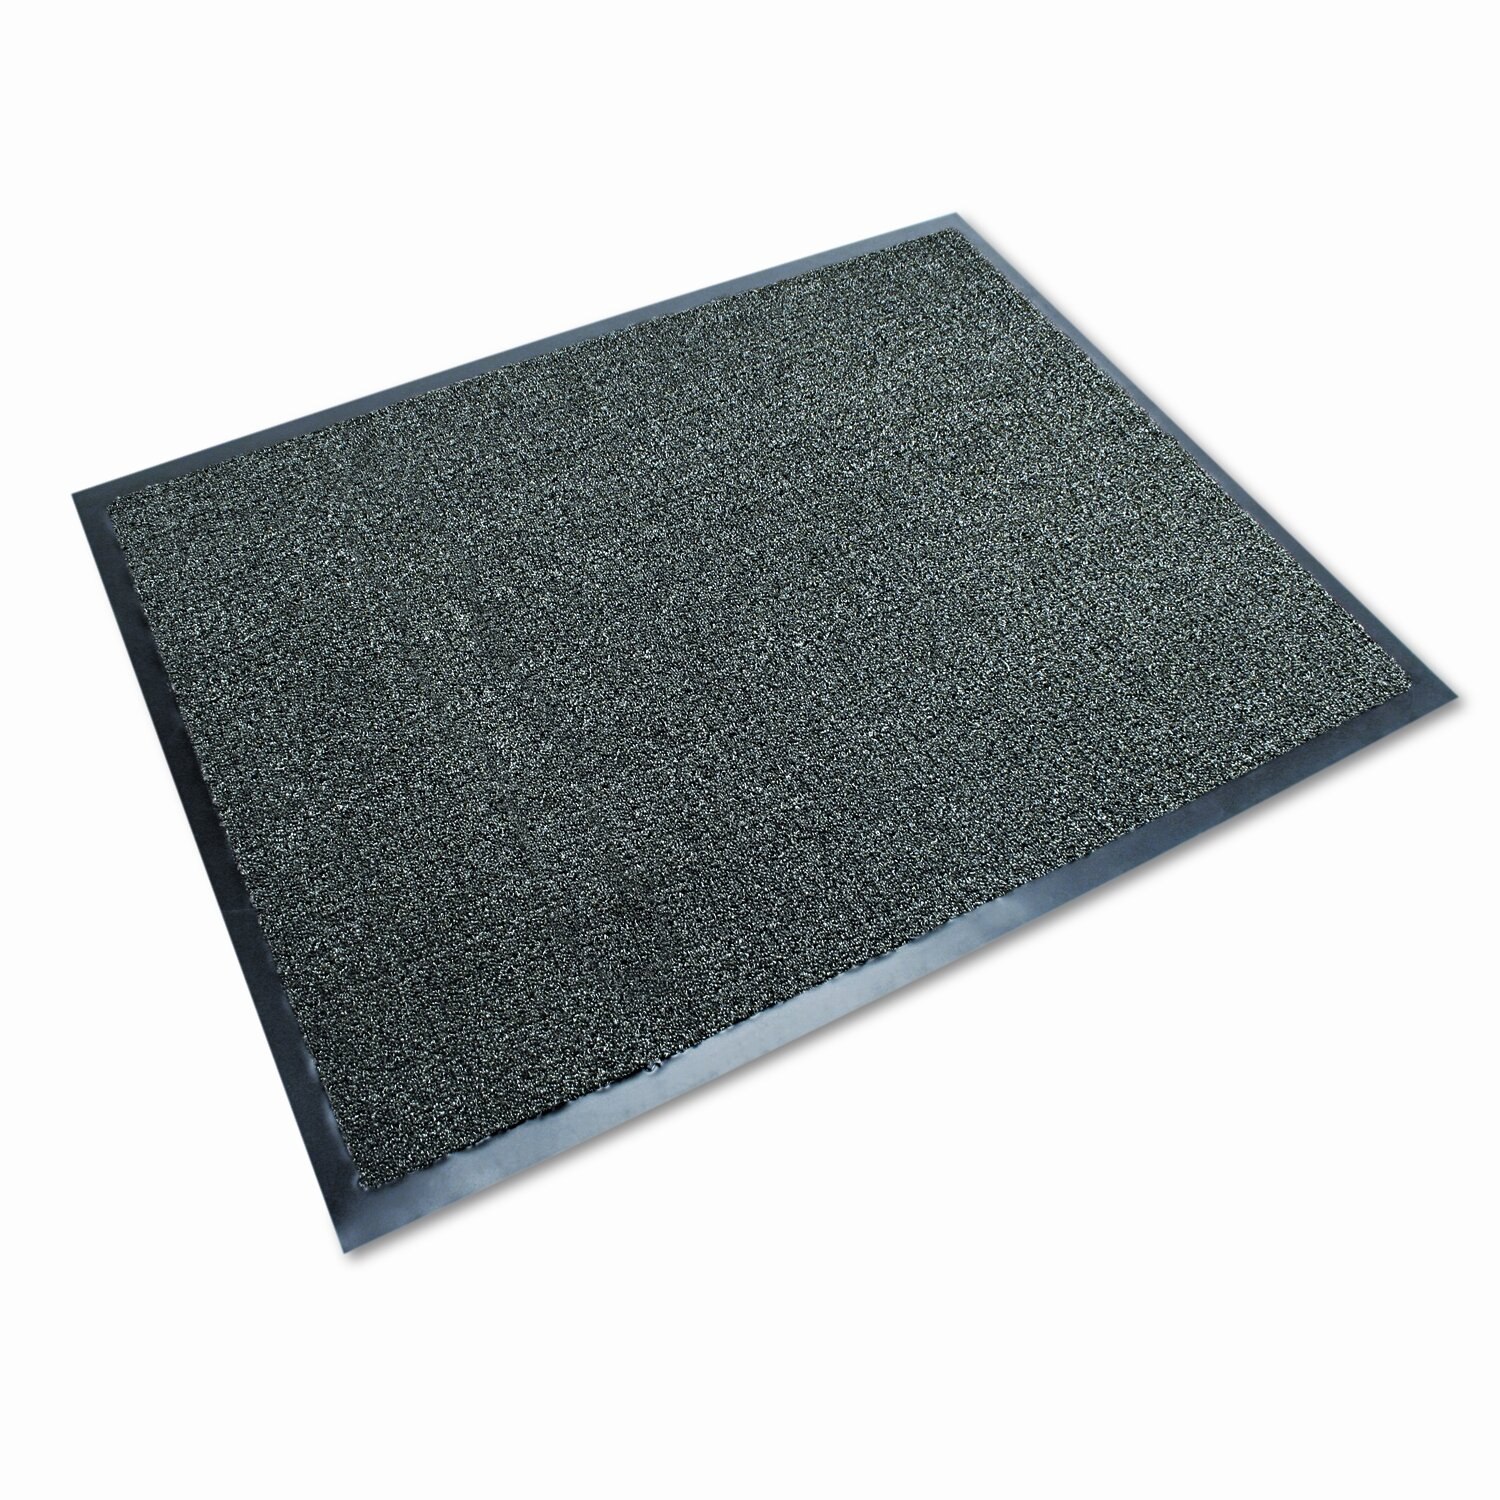 3m Nomad Solid Doormat Amp Reviews Wayfair Ca